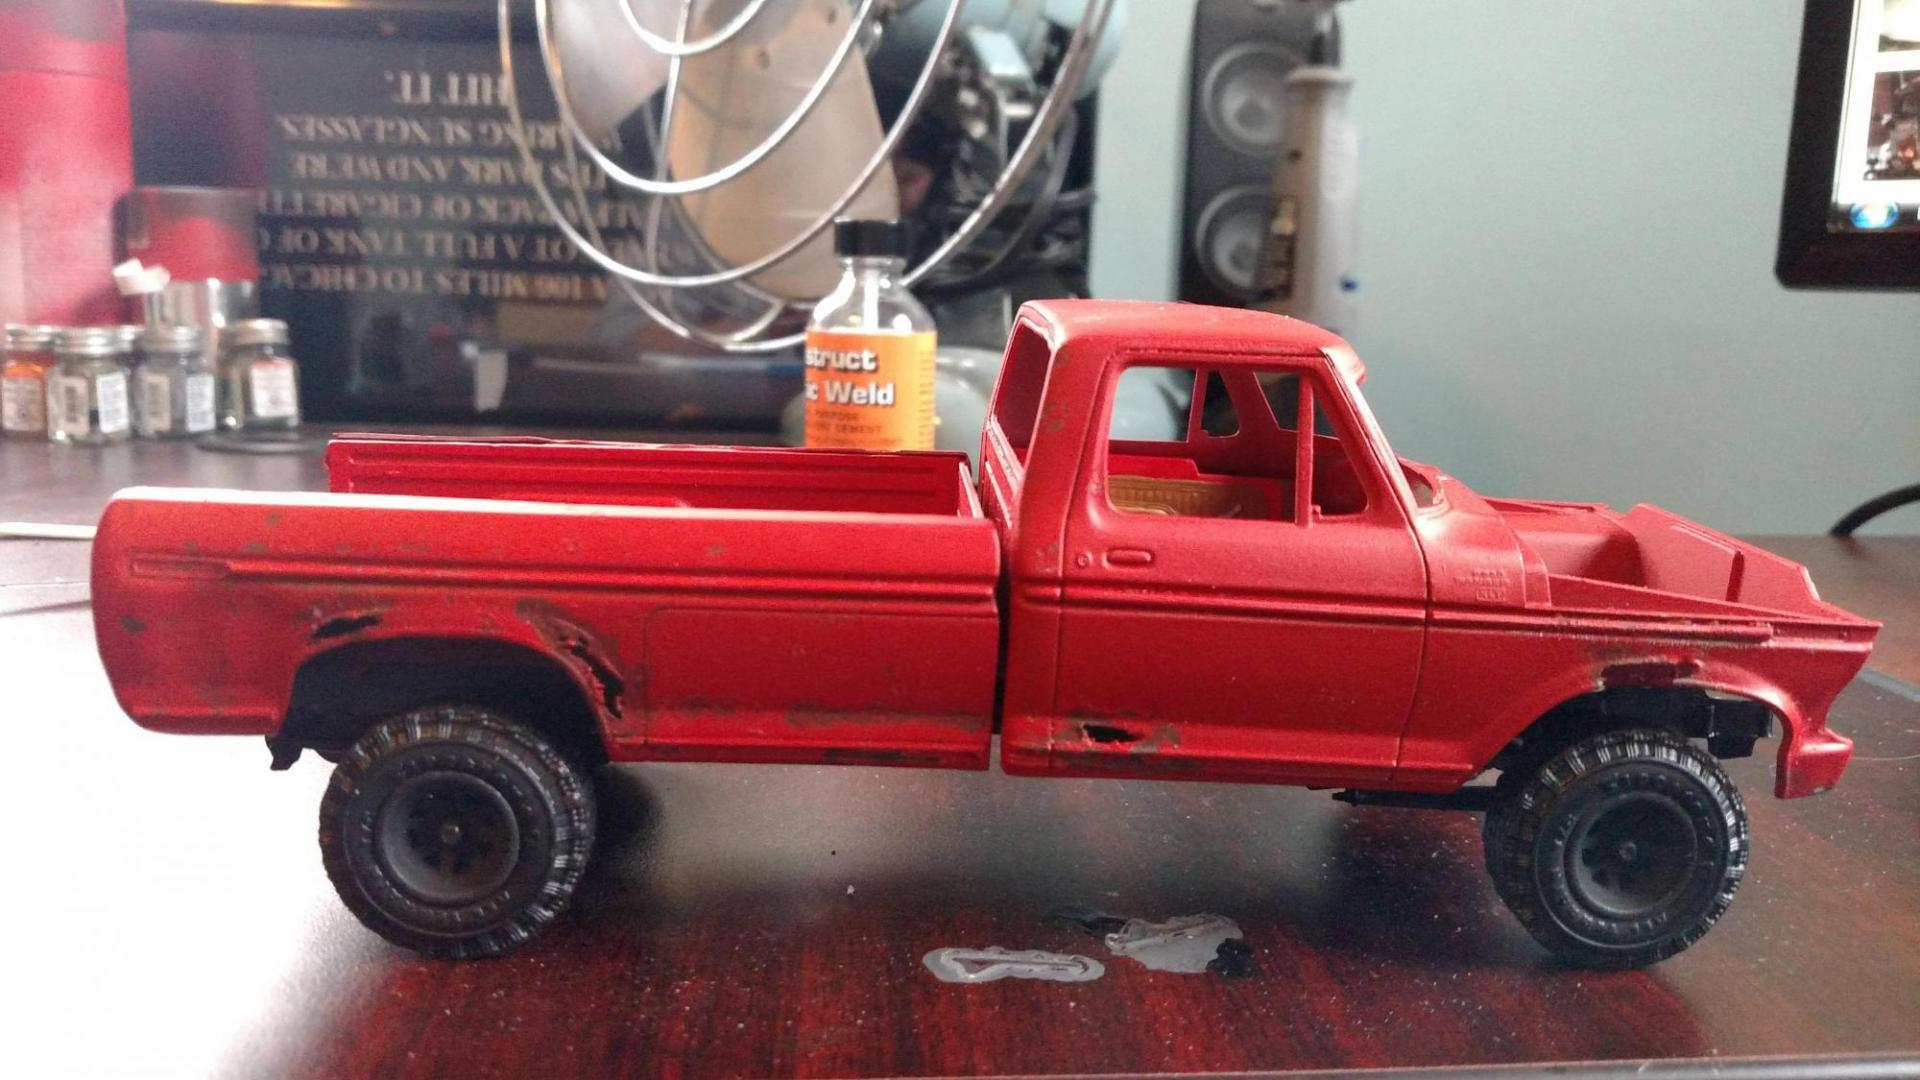 Used Cars Bay Area >> '78 Ford 4x4 beater / scrapper's truck - On the Workbench: Pickups, Vans, SUVs, Light Commercial ...